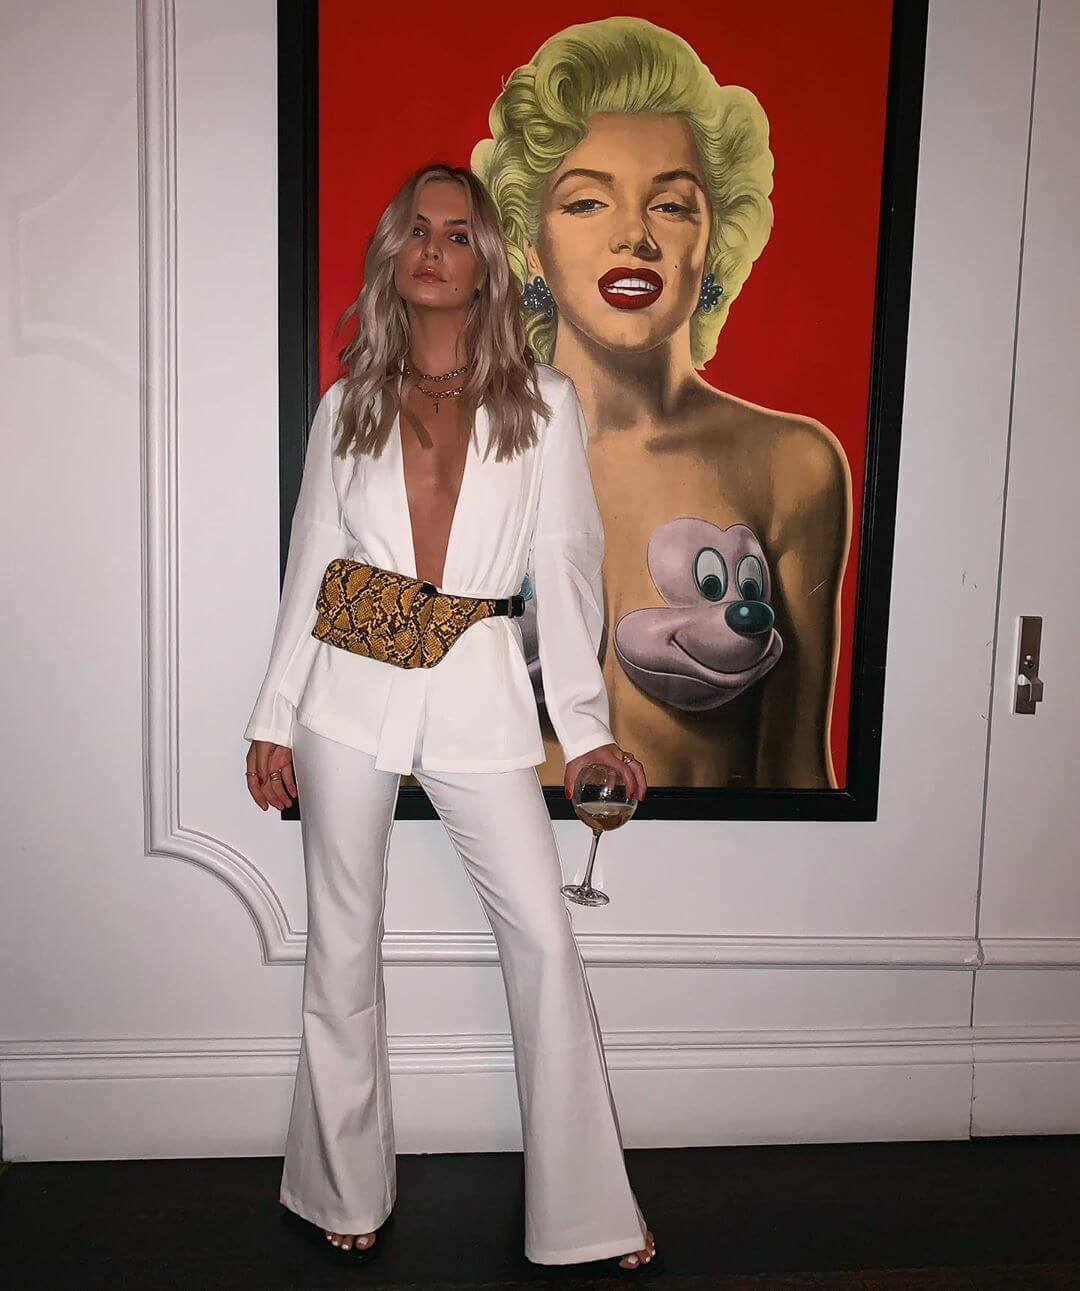 London influencer in front of painting wears white morgan blazer and trouser set